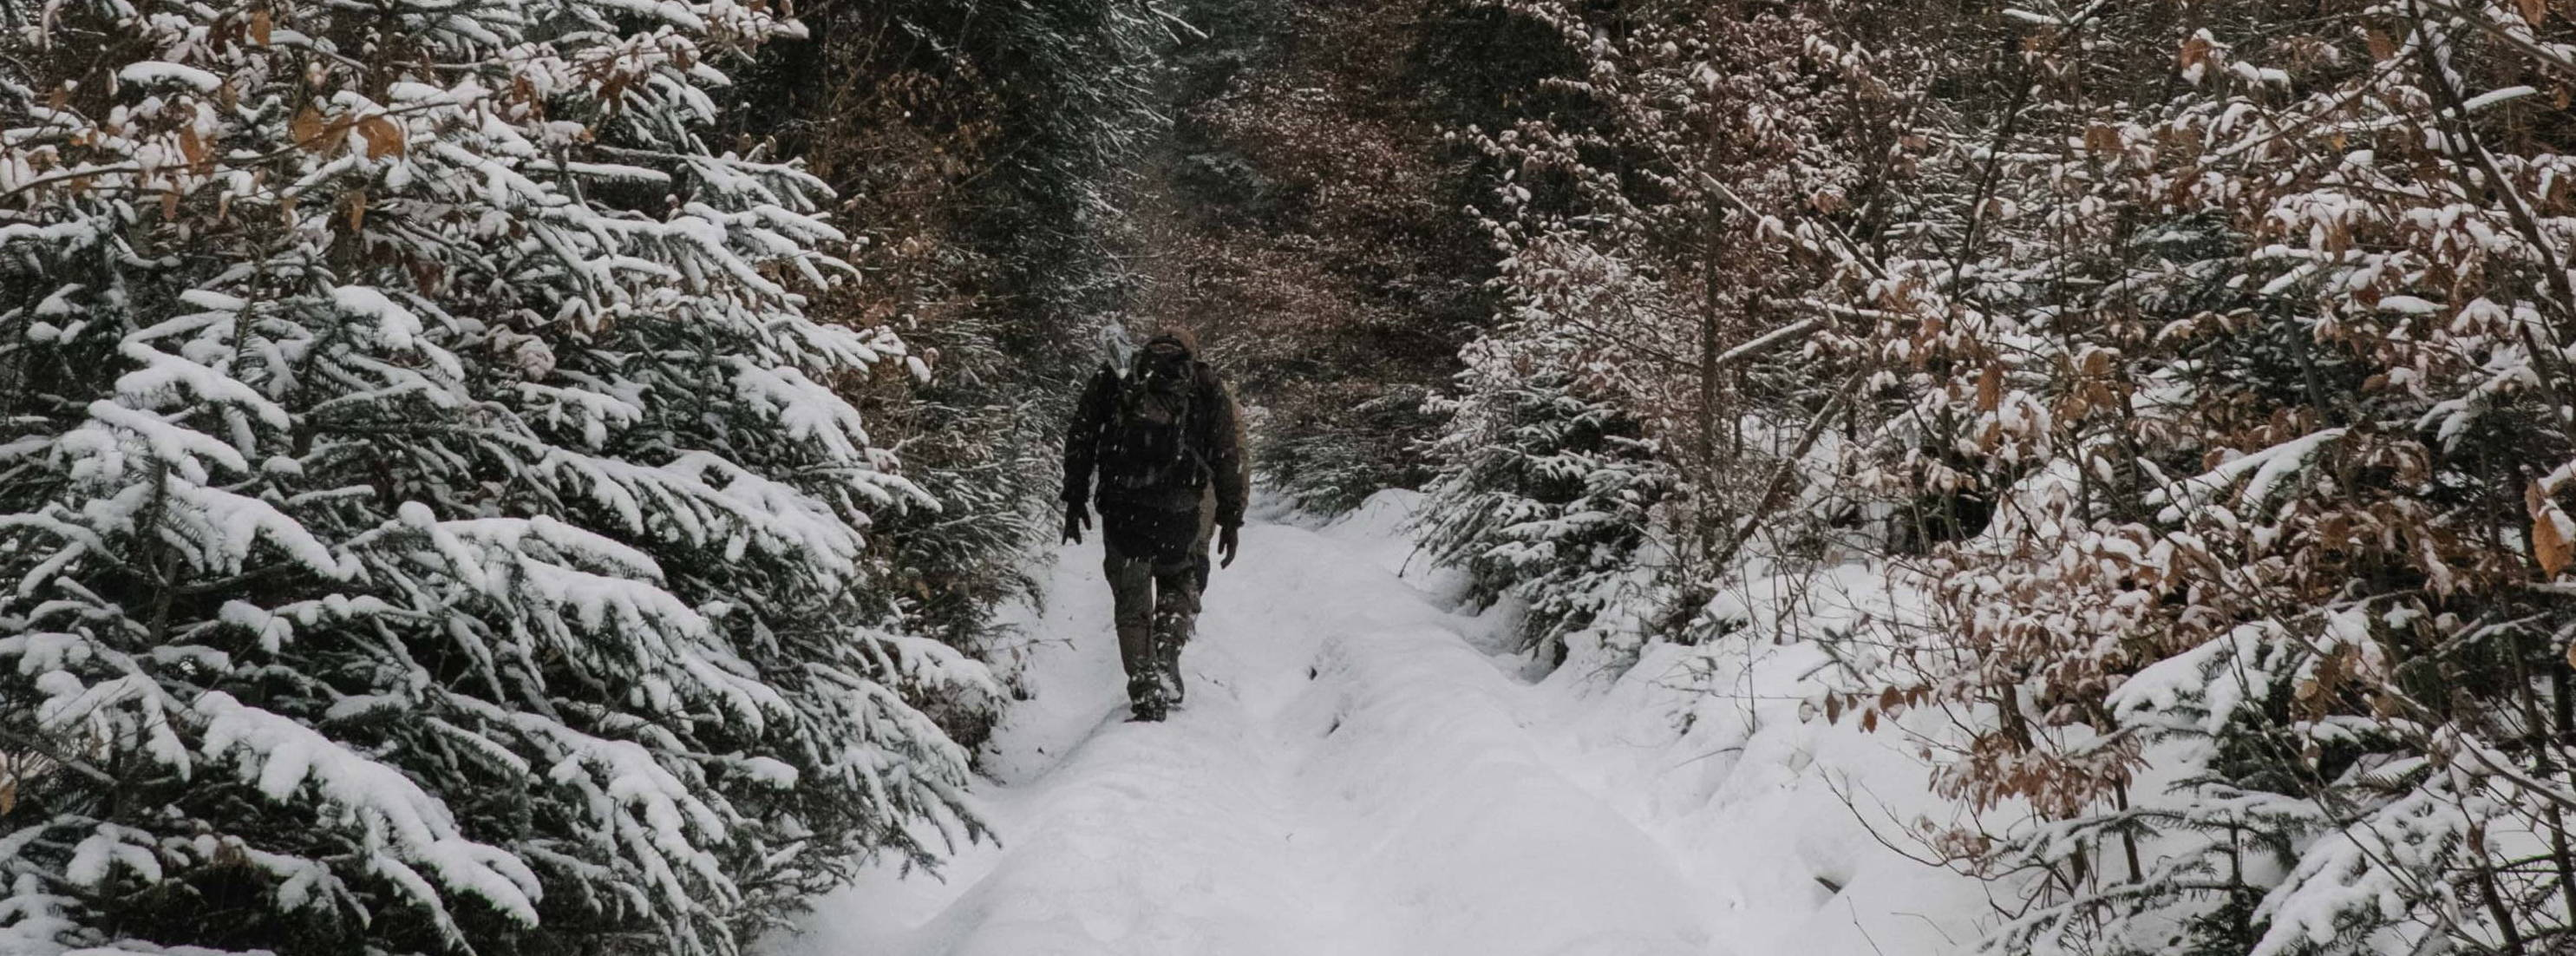 A field technician hikes up a snowy trail through the forest